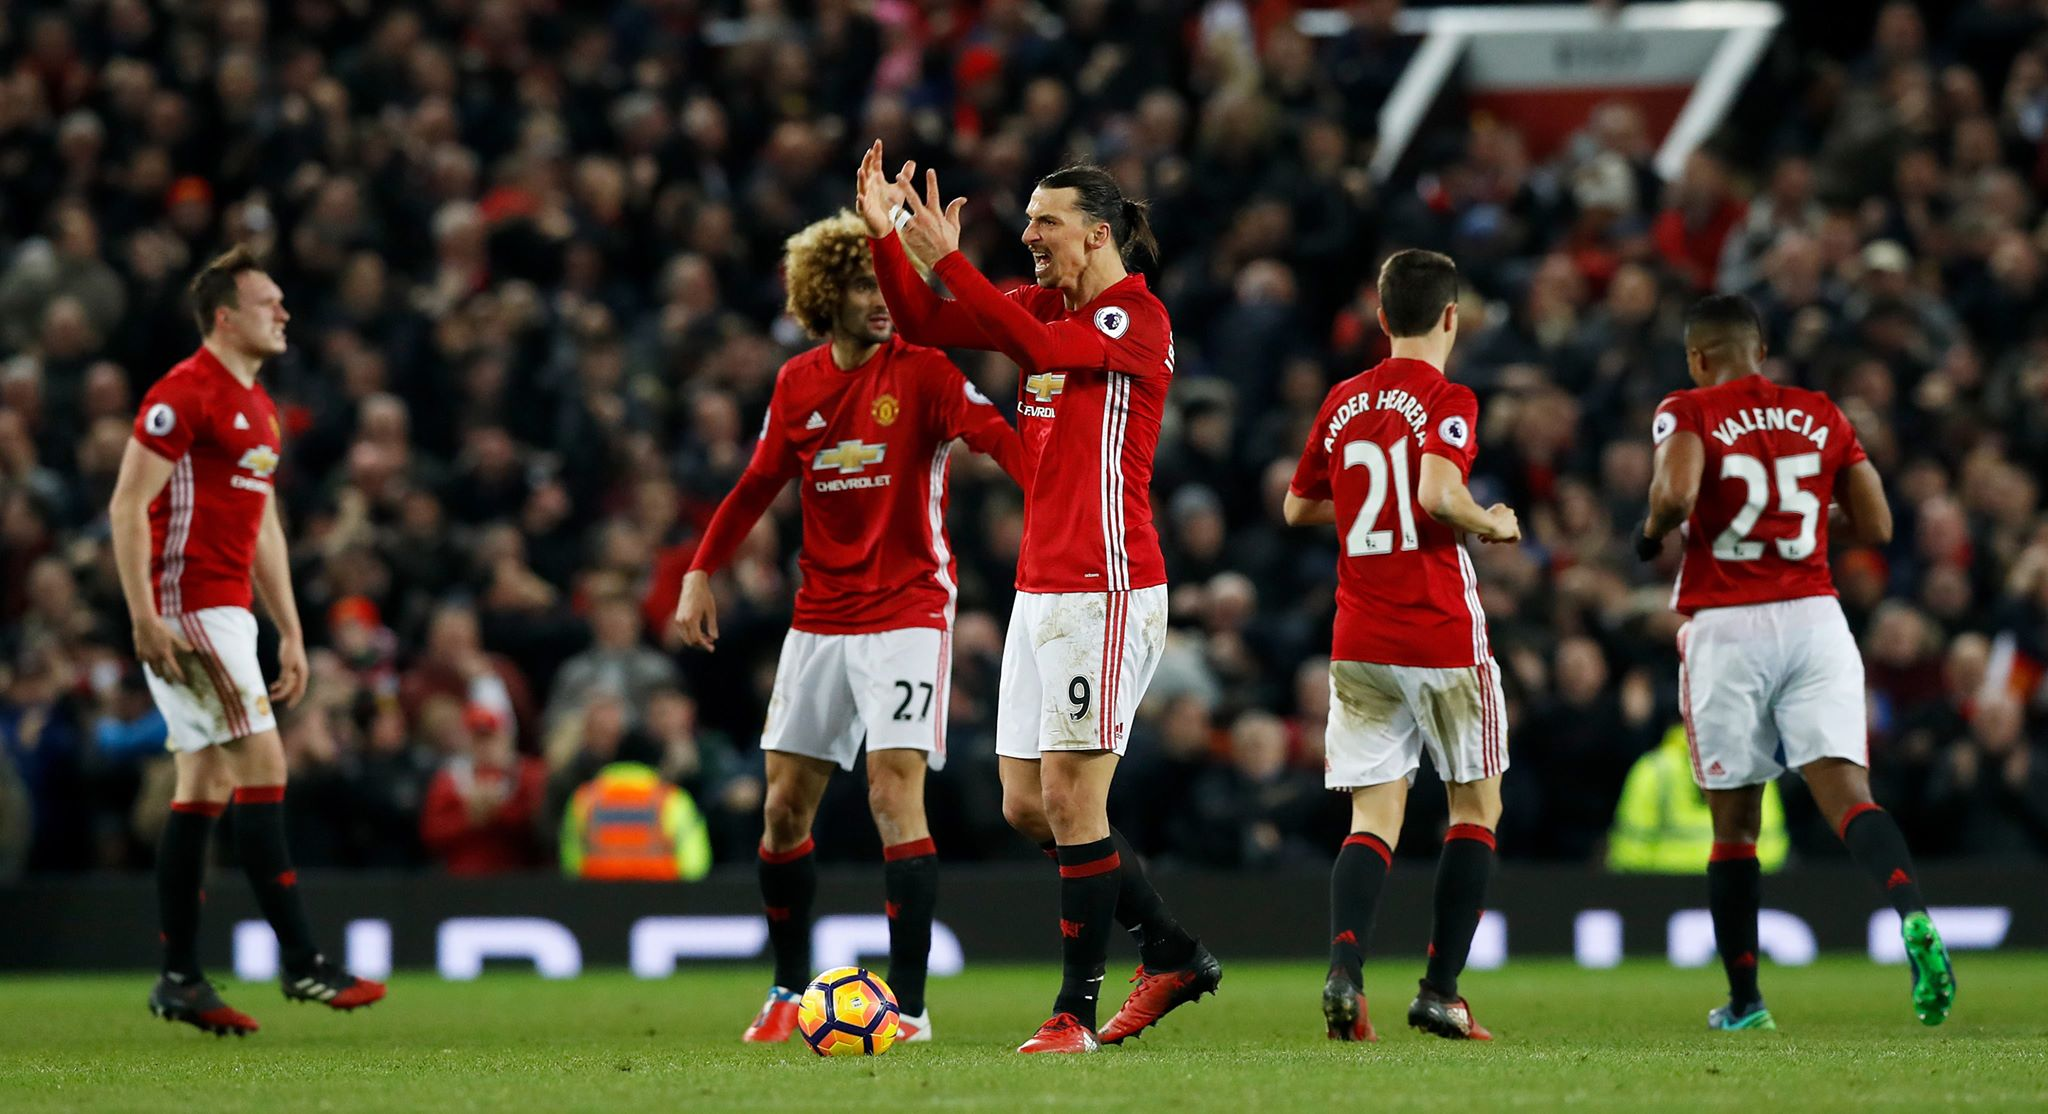 Ibrahimovic explains why he has returned to Man United